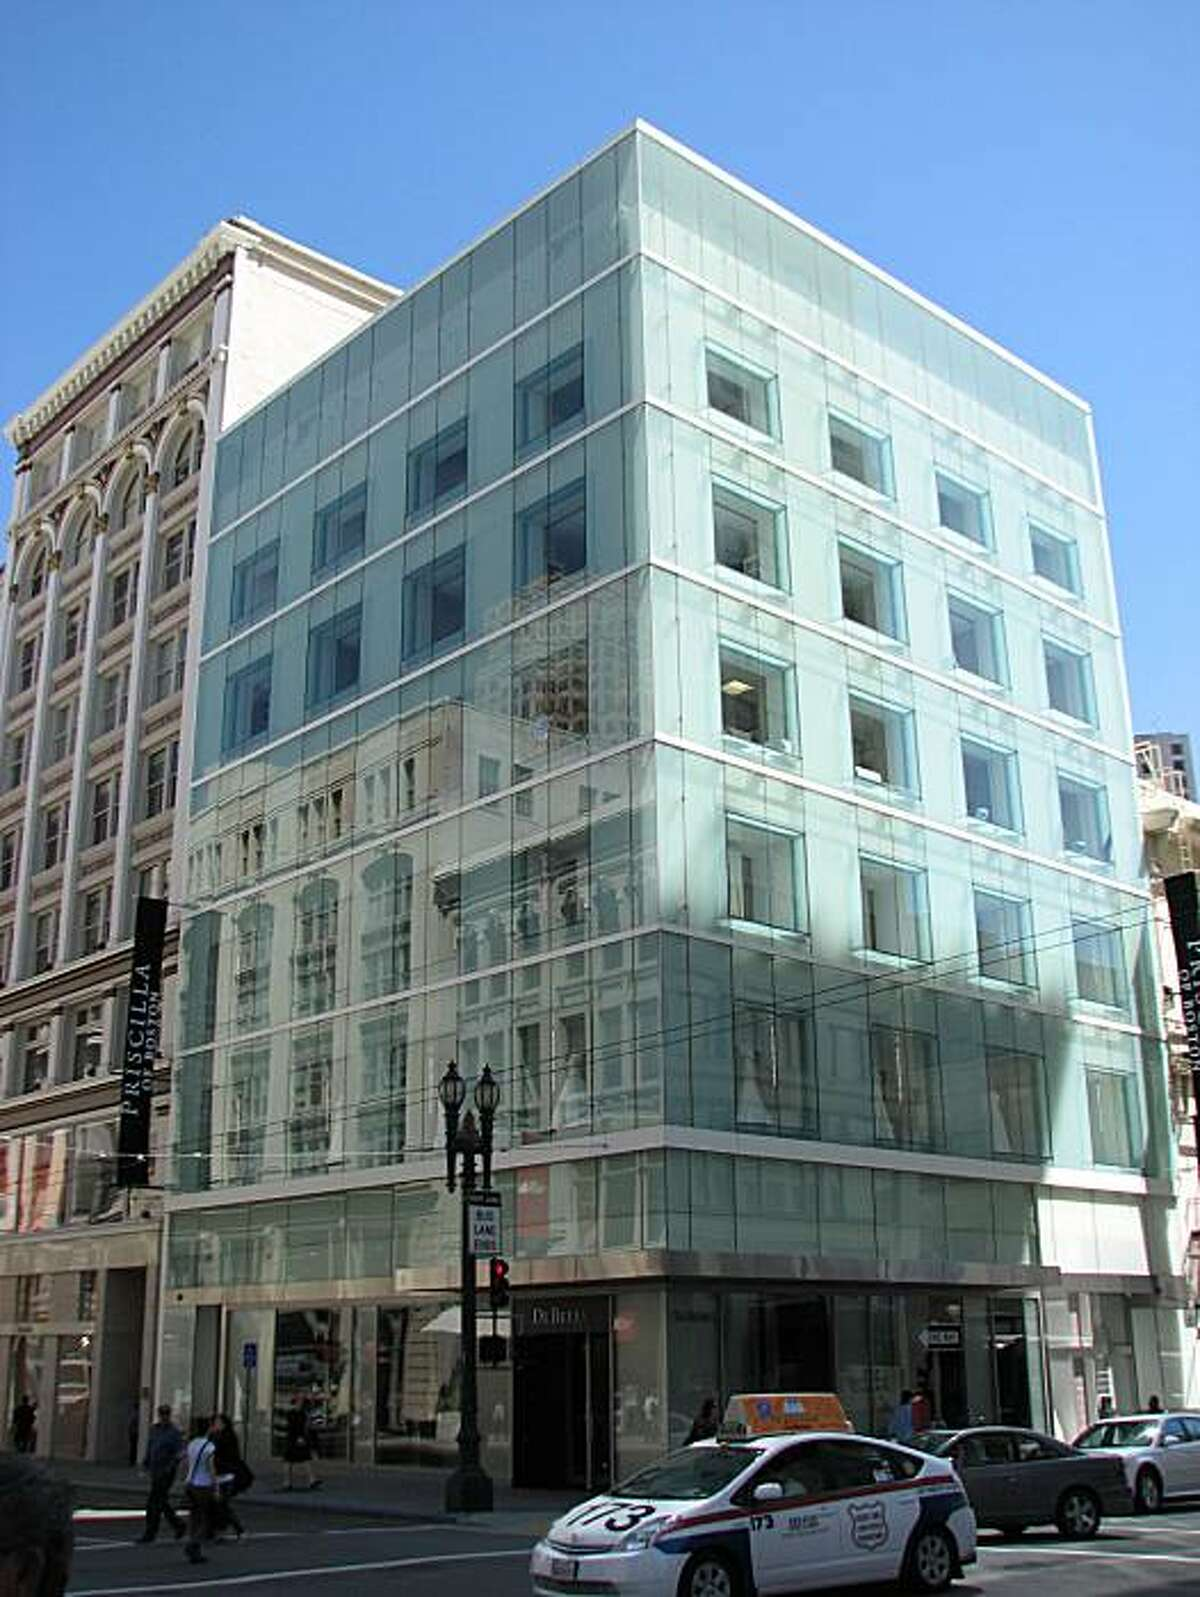 At 185 Post, the restoration of a 1908 masonry building beneath new outer walls of glass has added a contemporary twist to the architecture of the Union Square area.